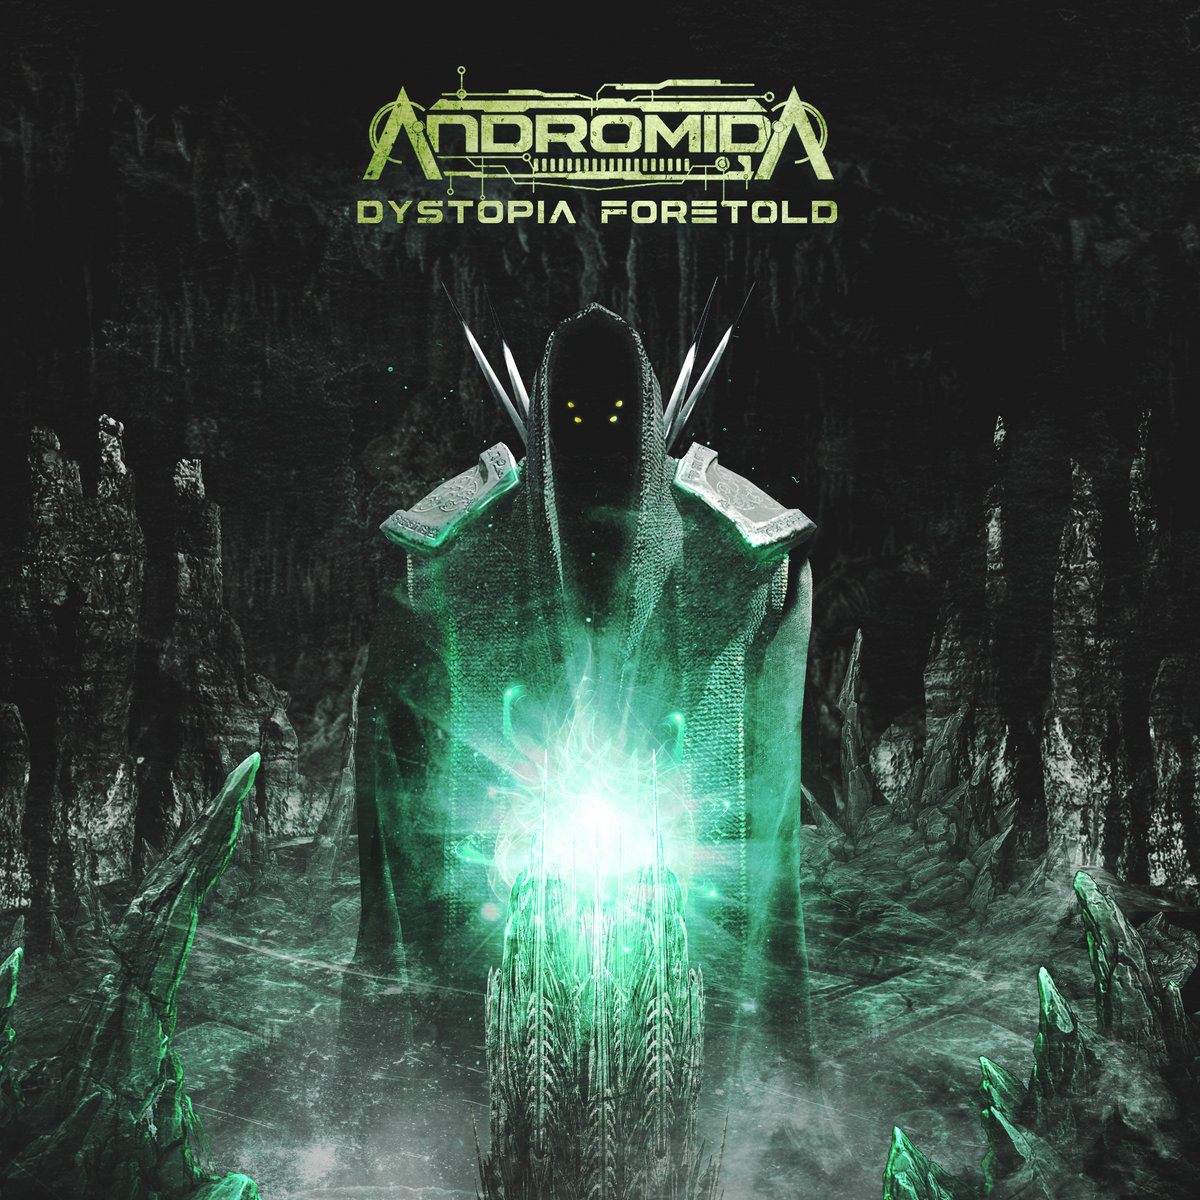 Dystopia Foretold by Andromida